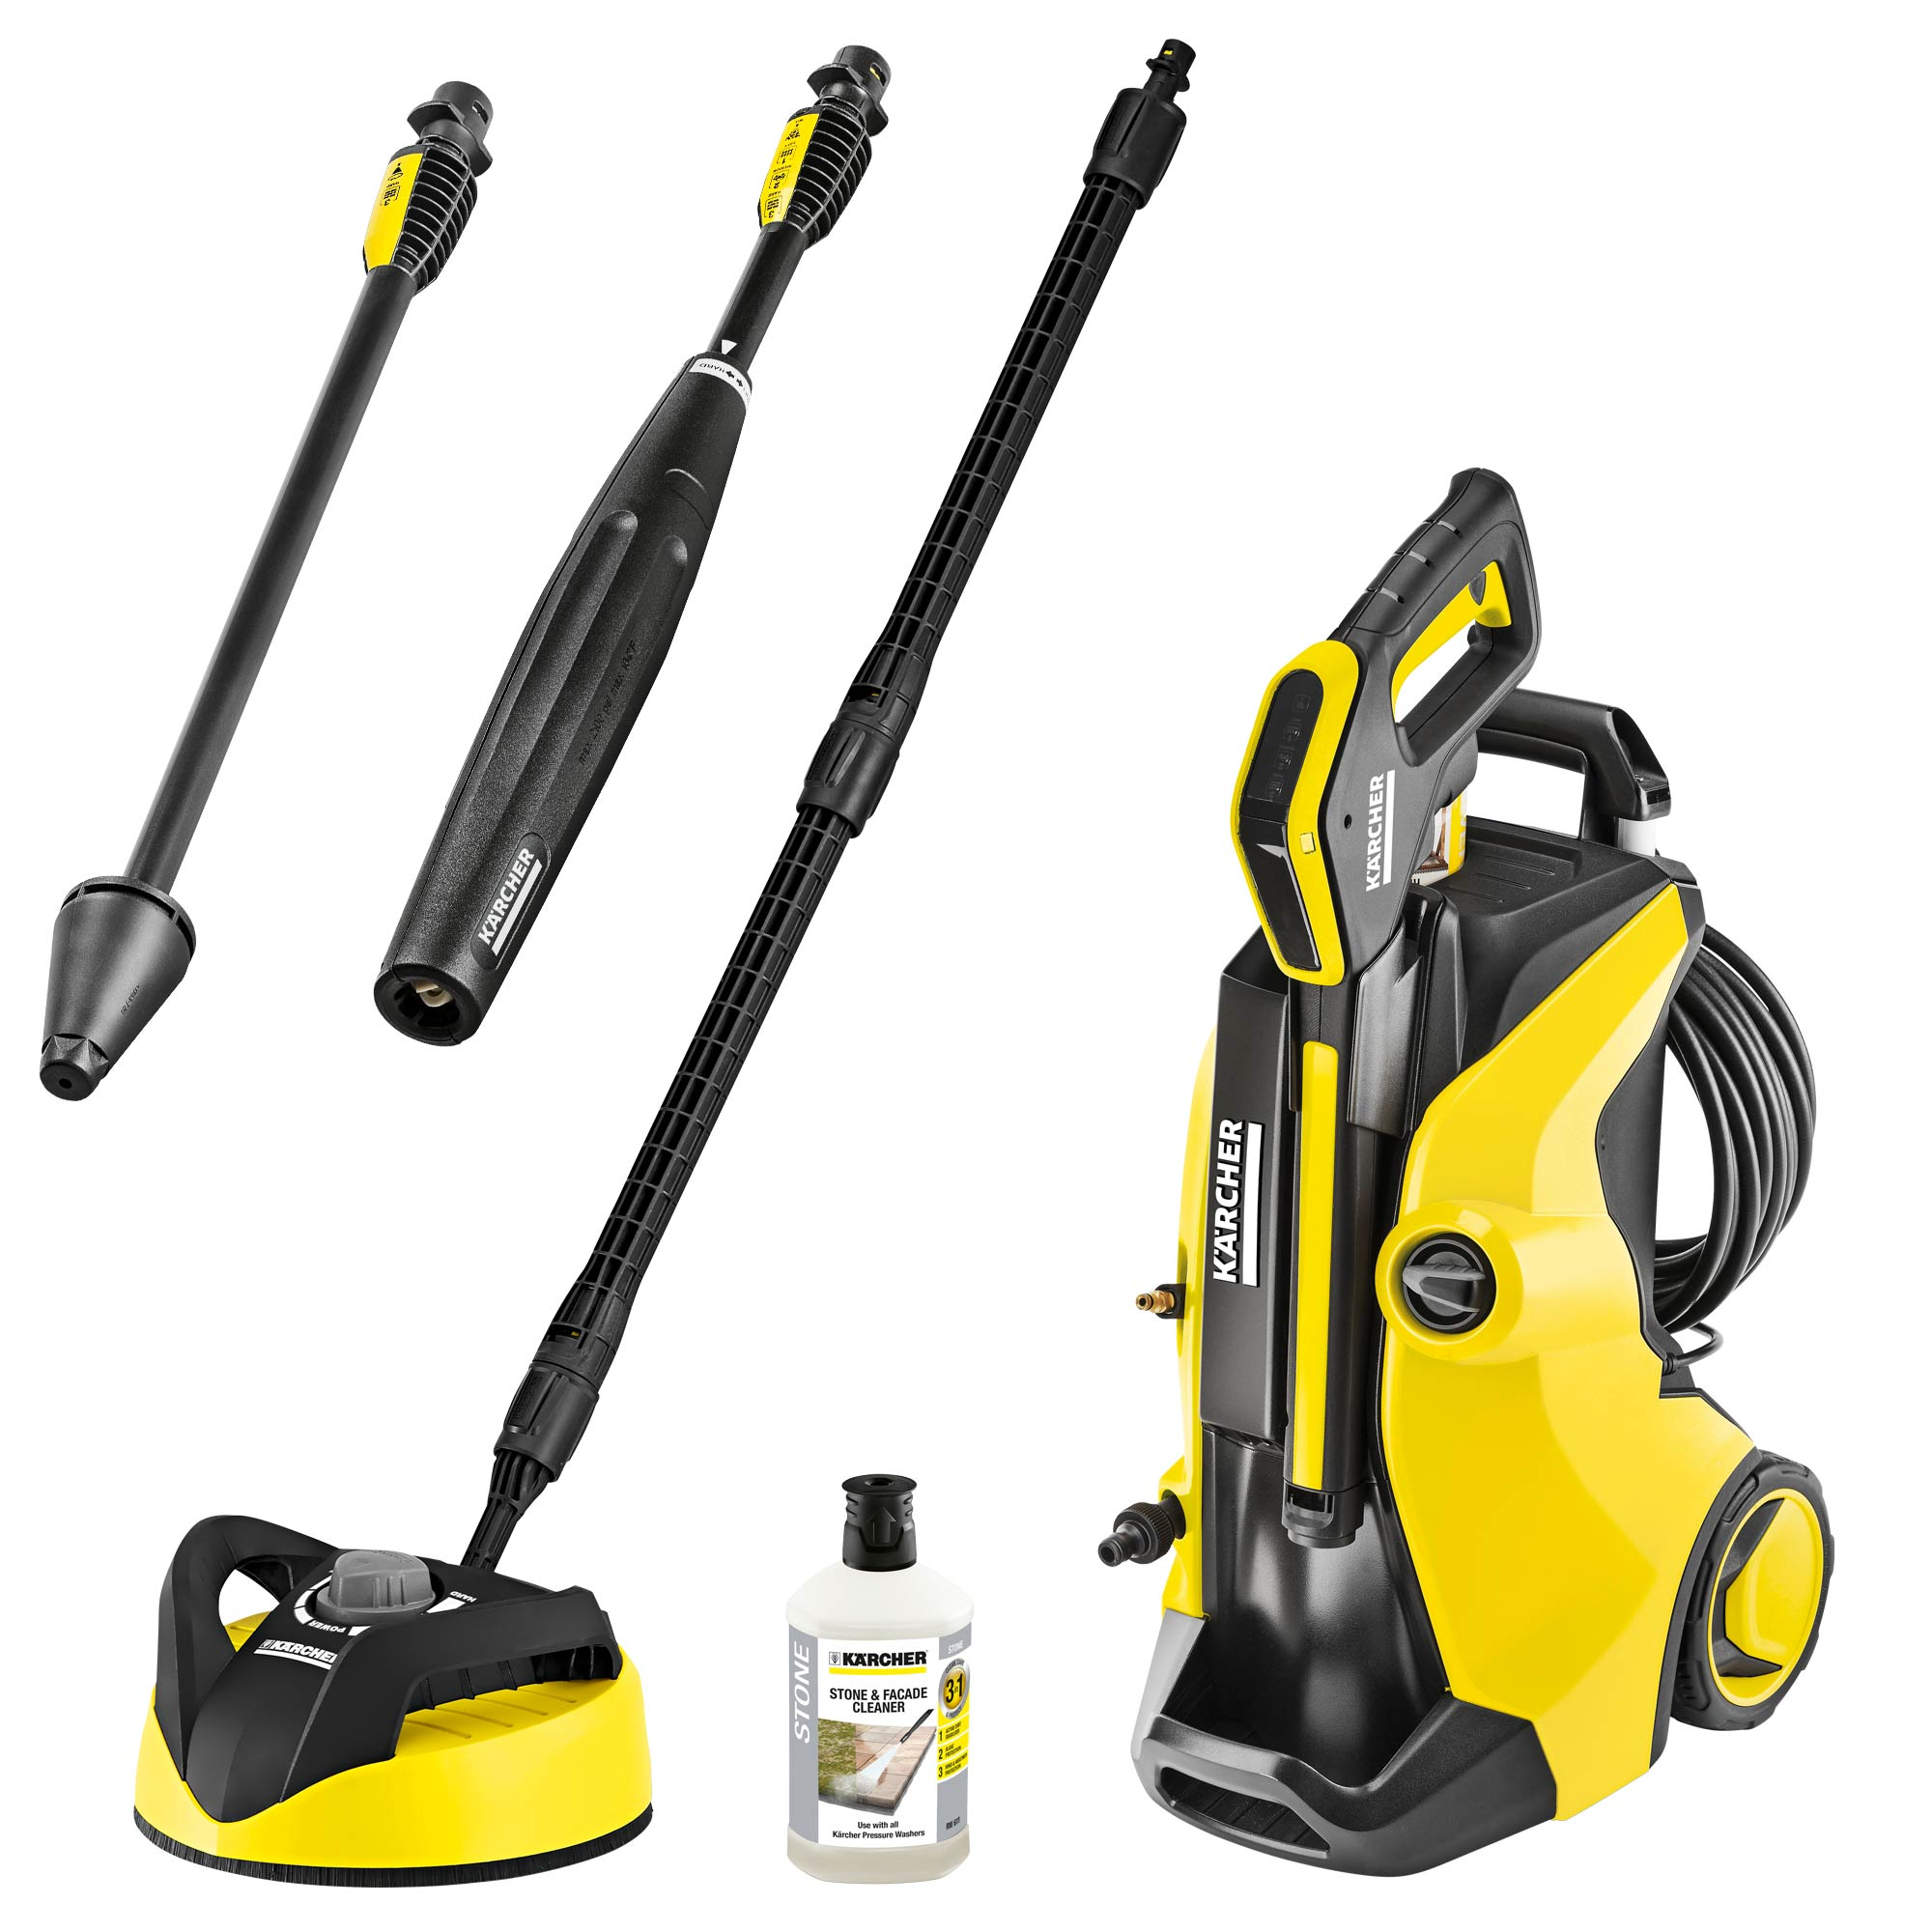 Karcher 13245040 karcher k5 full control home - Karcher k5 full control ...